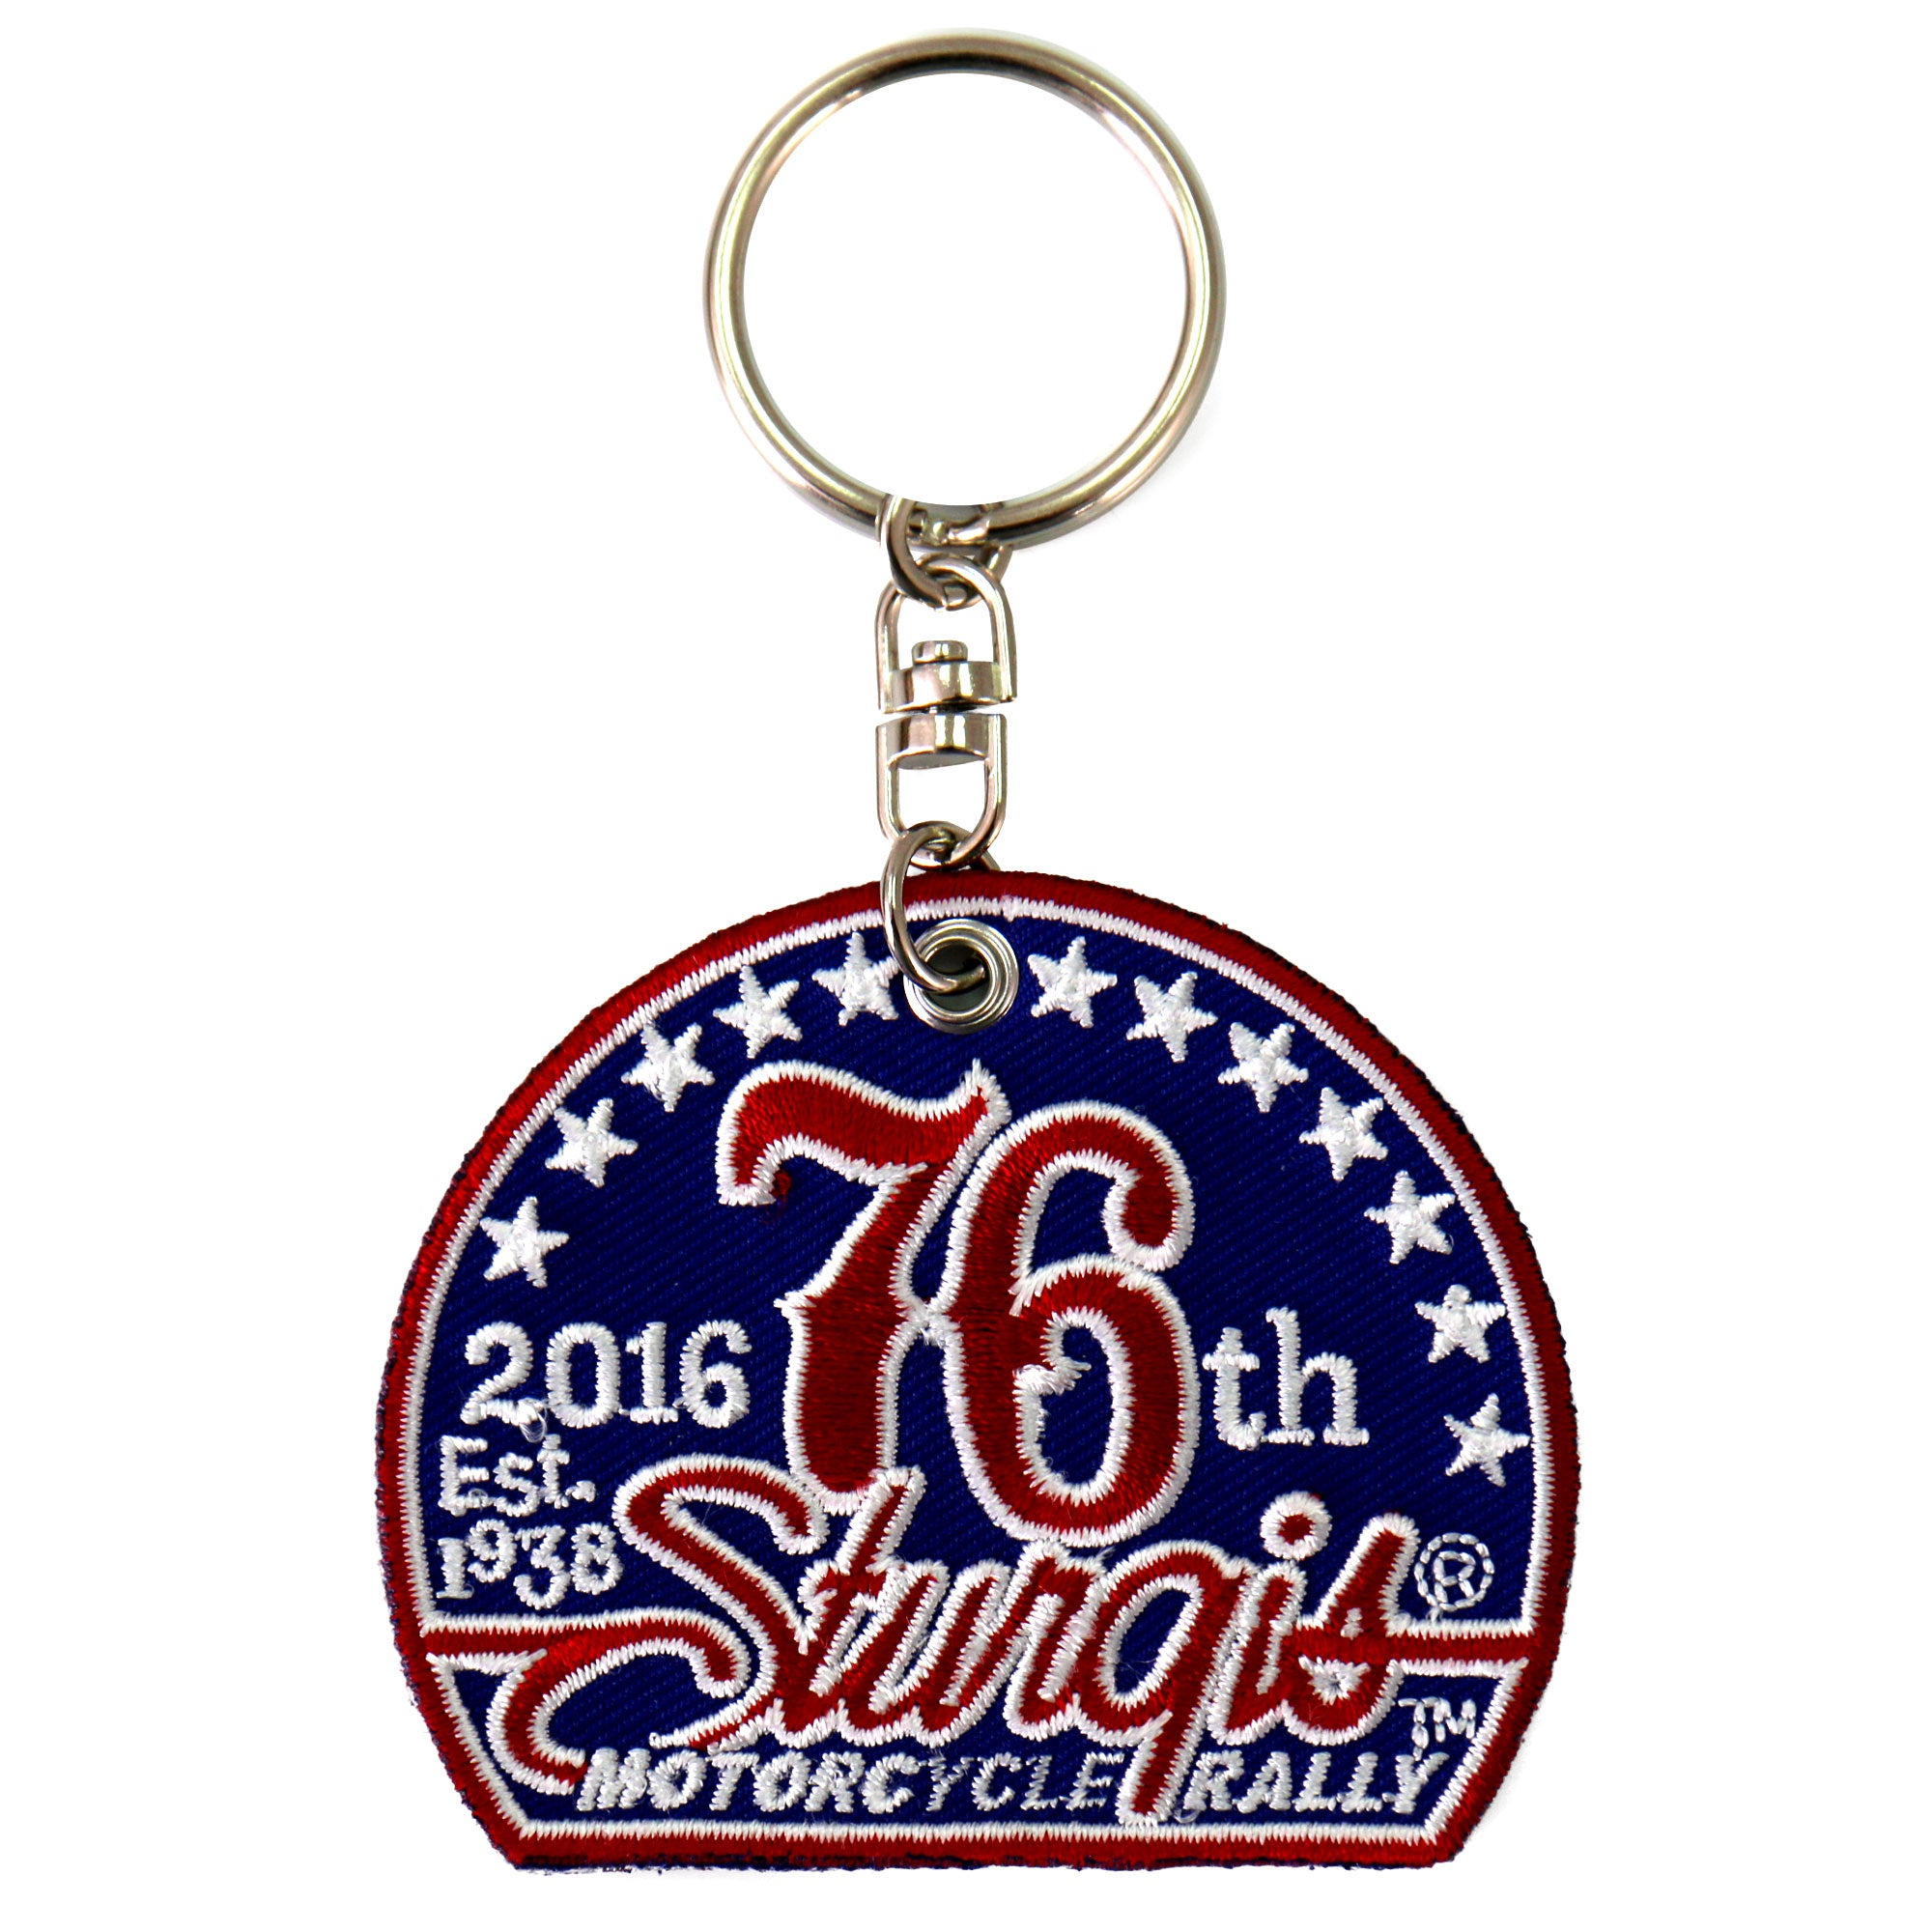 Official 2016 Sturgis Motorcycle Rally 76th Logo Patch Keychain